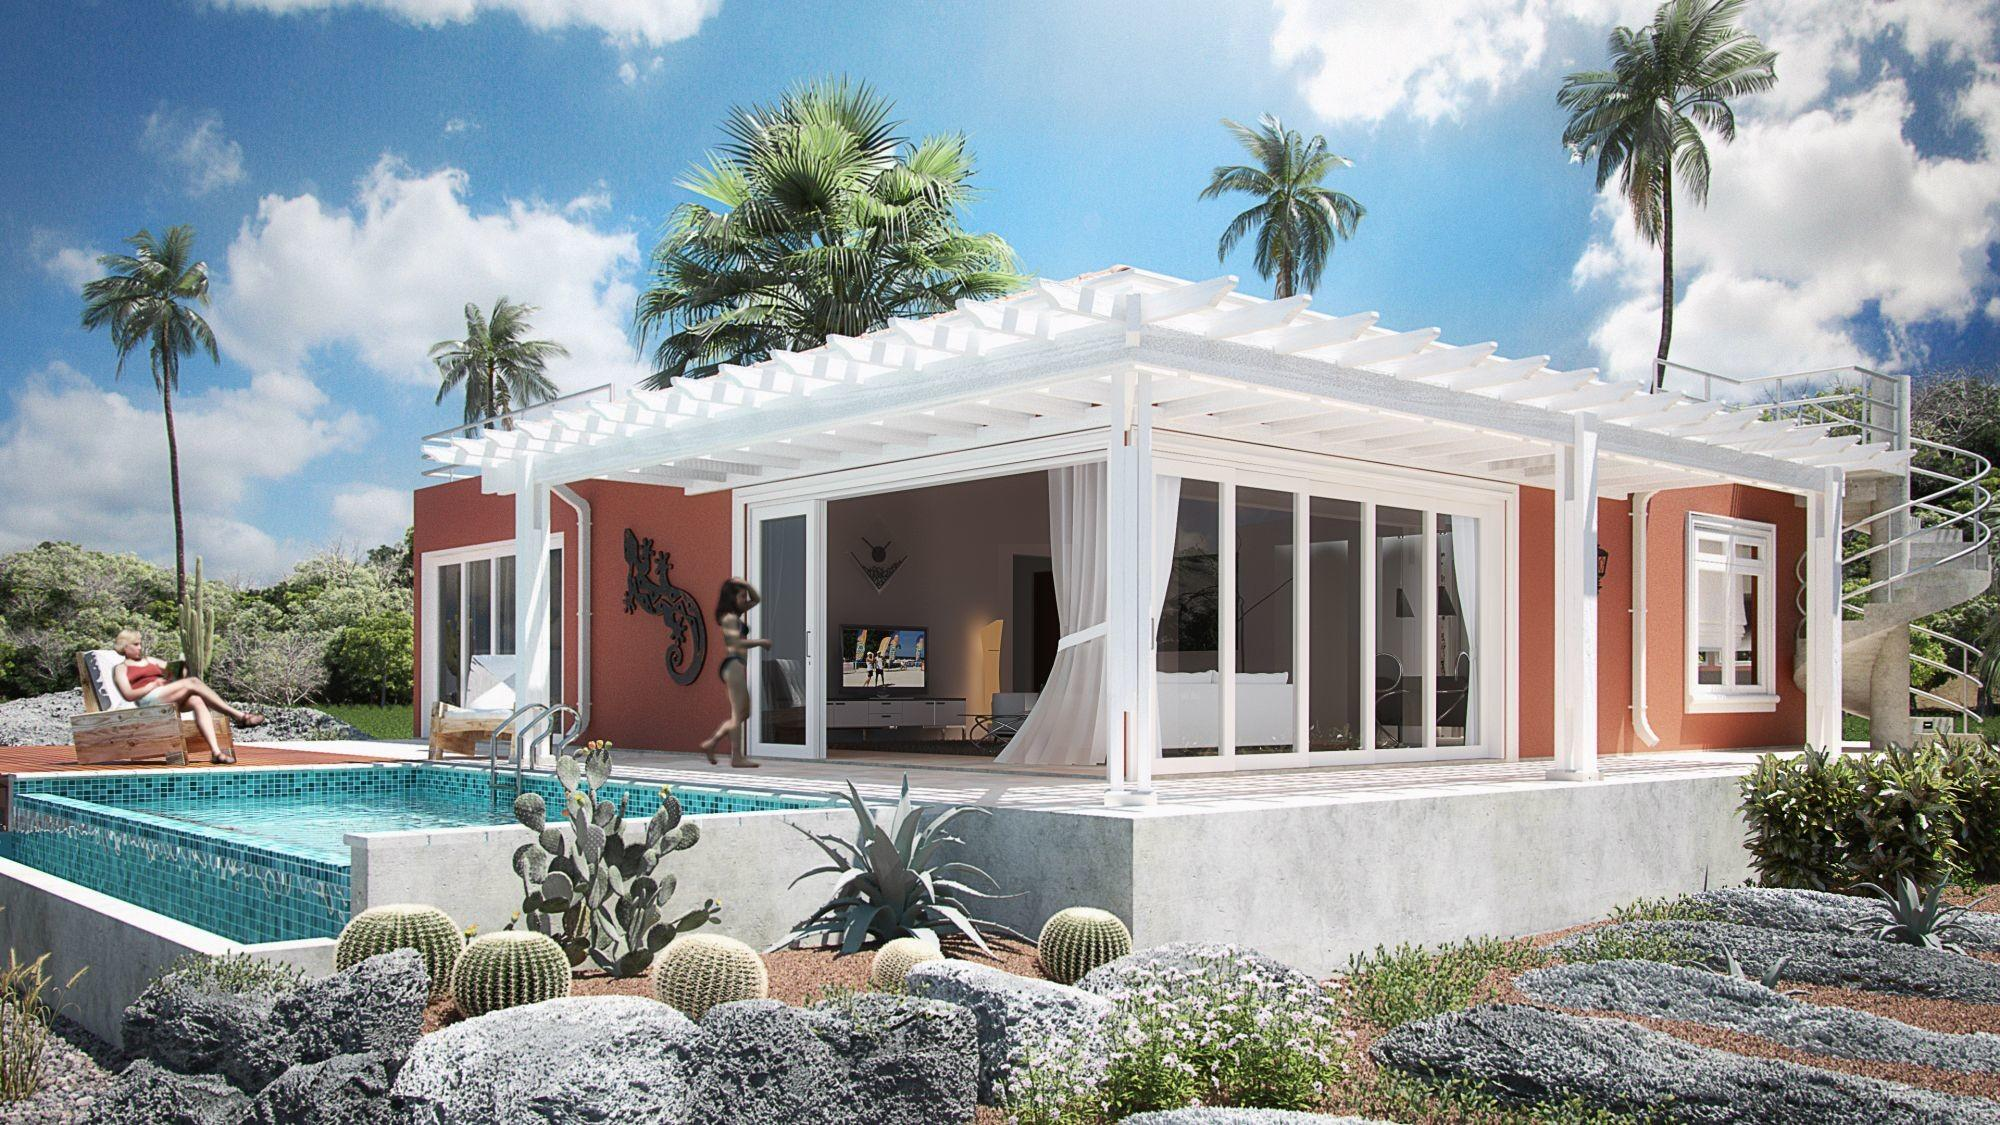 15 Extraordinary Small Beach House Tropical Style That Are Just Perfect Tons Of Variety Decoratorist